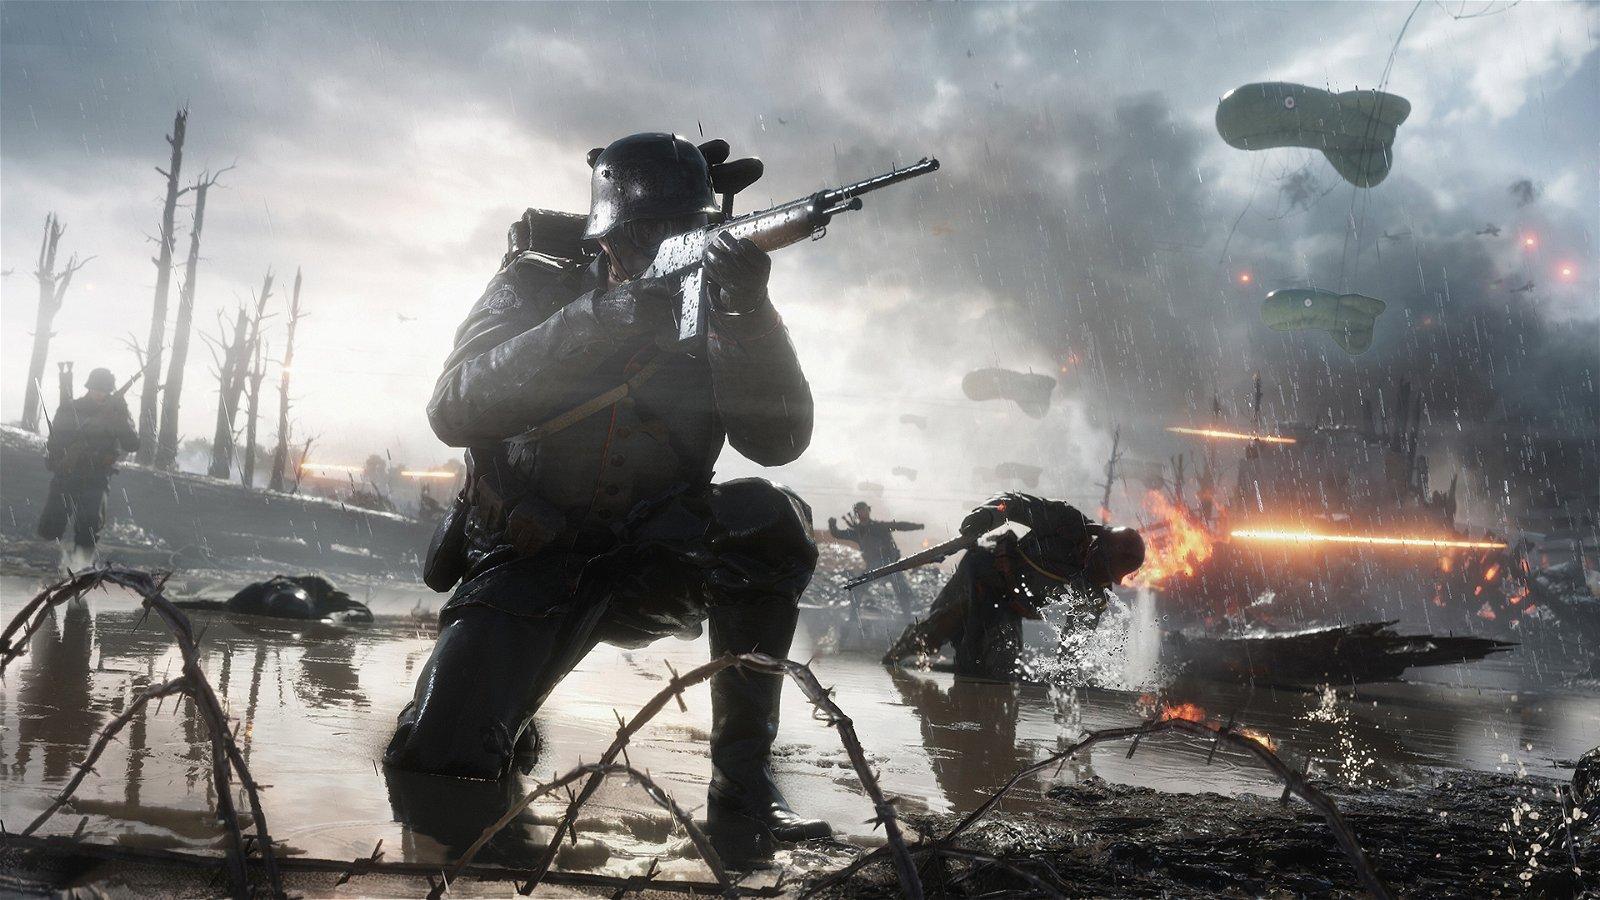 Electronic Arts reports net loss for Q2 amid strong digital numbers